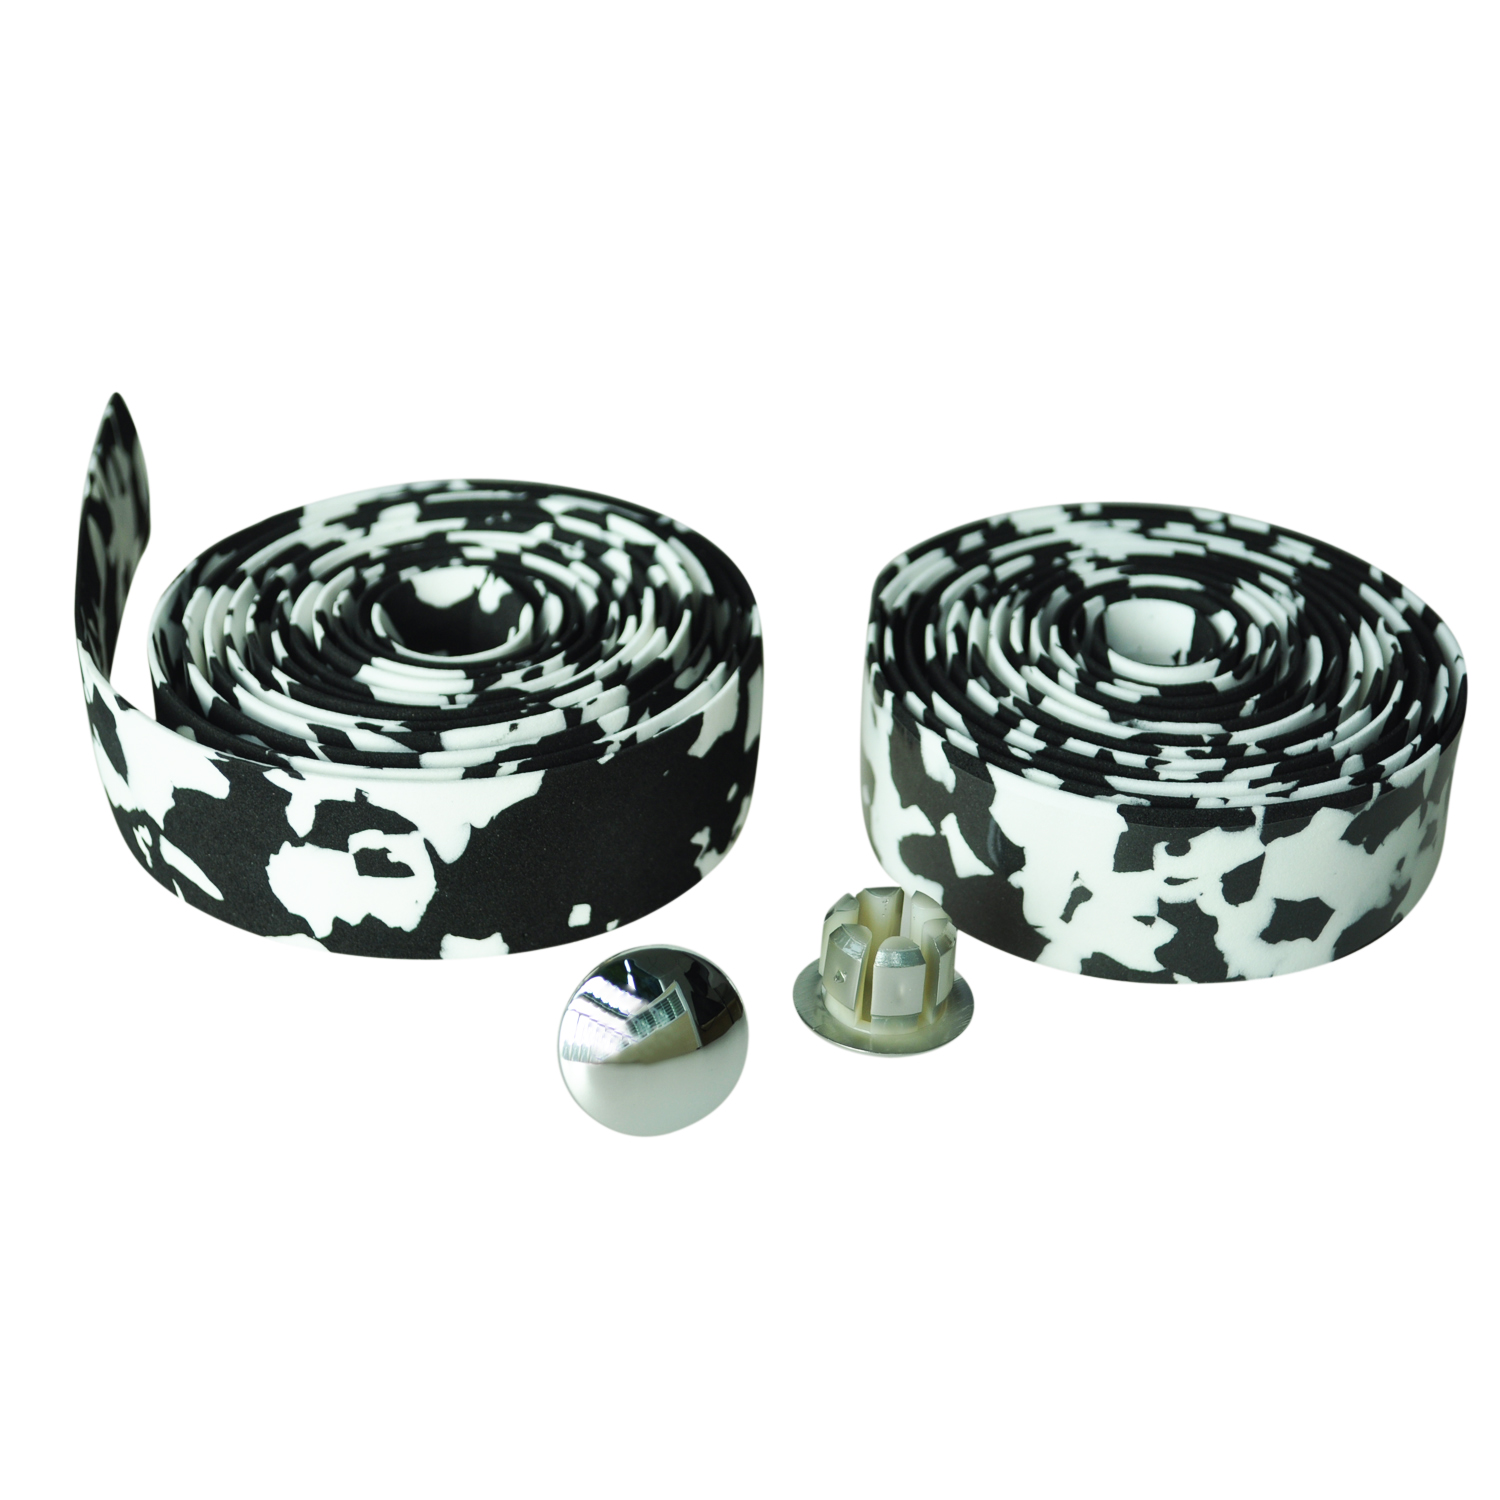 Frank Road Bike Bicycle Cork Handlebar Bar Grip Wrap Tape + 2 Bar Plugs-black & White Camo Harmonious Colors